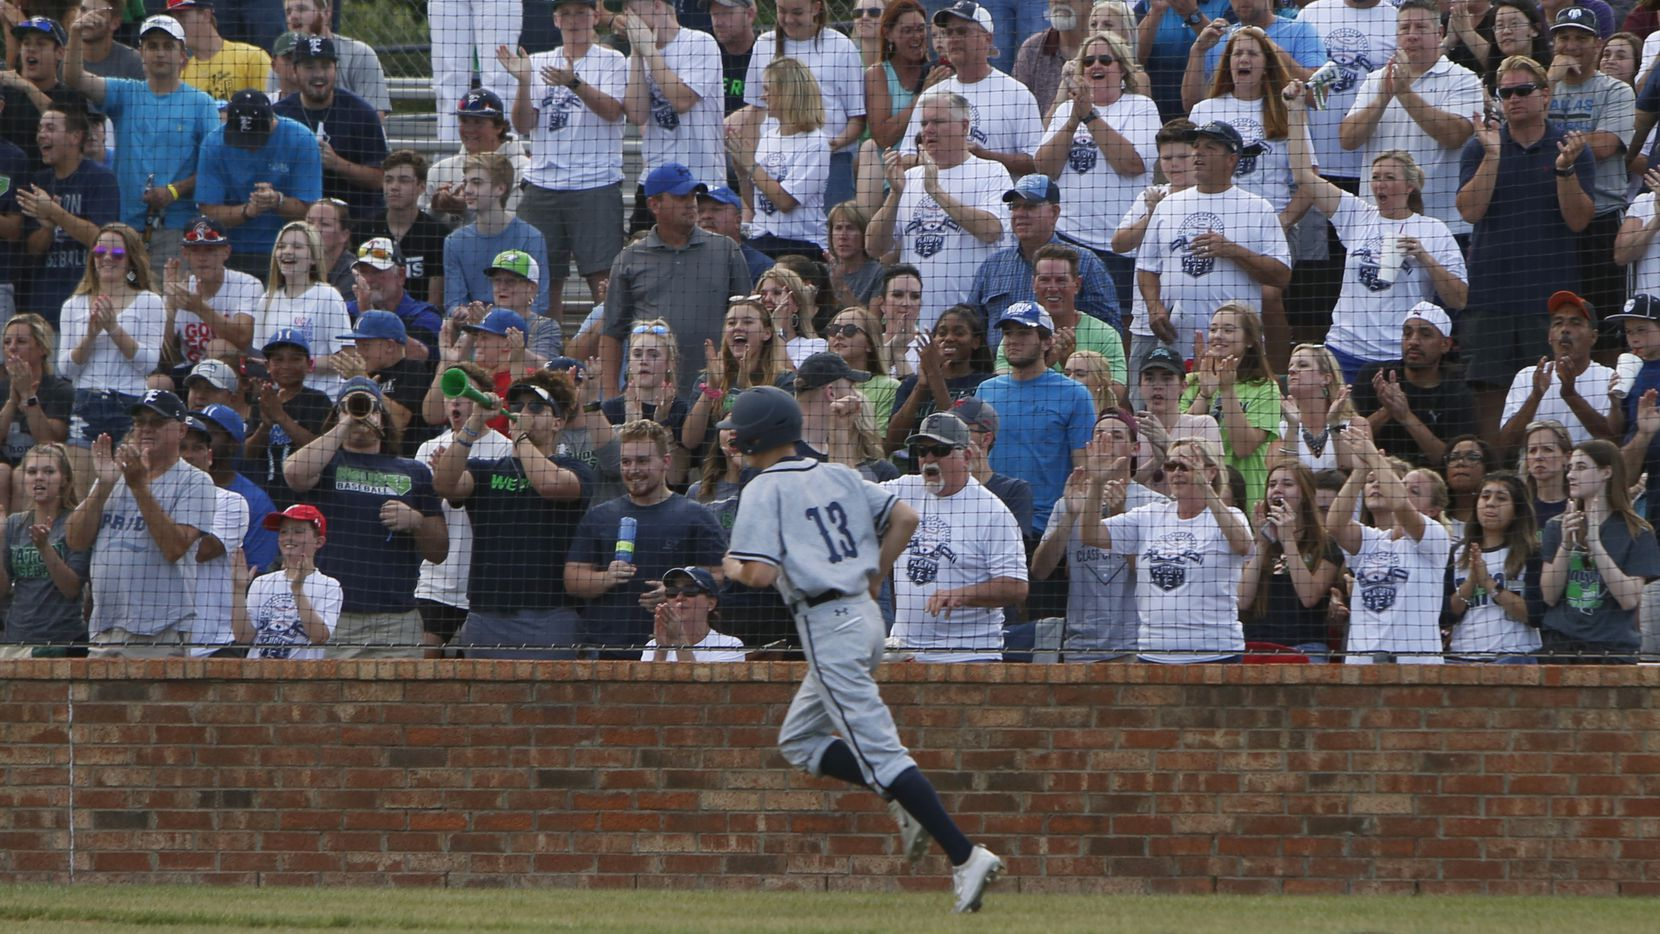 Northwest Eaton's Kolton Graham (13) dashes past the cheer of the fans after scoring in the top of a 3-run top of the 1st inning of play against Richland. Eaton won 6-2 to advance. The two teams played a one-game  Class 5A Region 1quarterfinal baseball playoff game at Hurst L.D. Bell High School on May 17, 2018. (Steve Hamm/ Special Contributor)